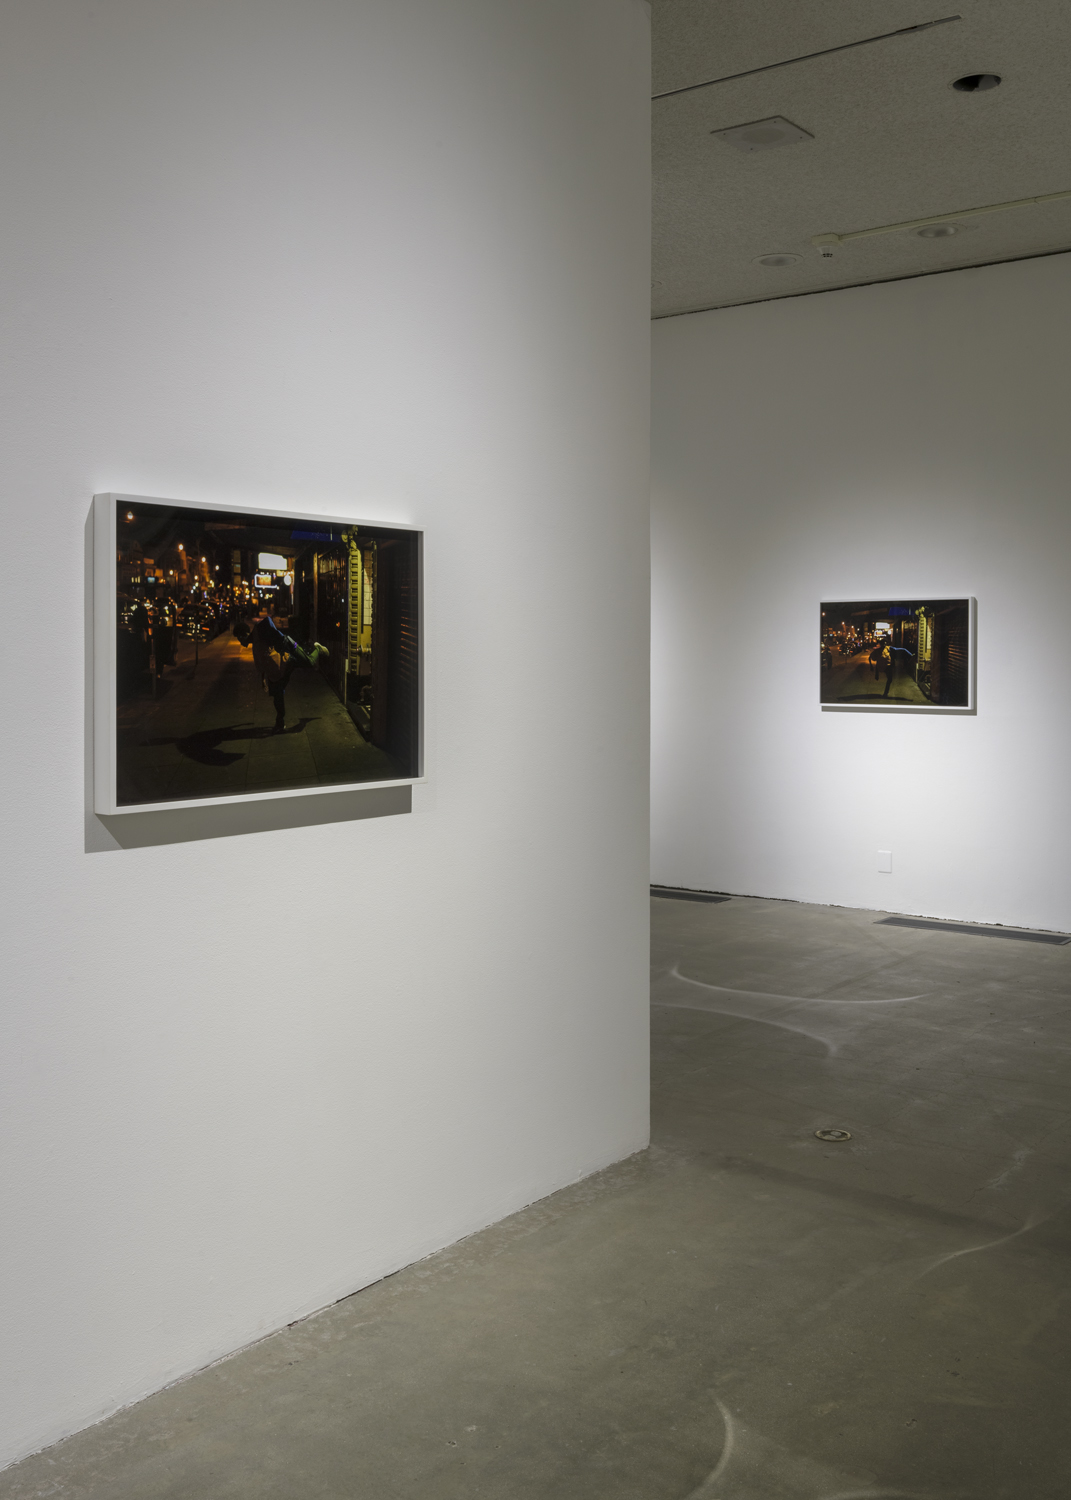 There is one large horizontal photograph hanging on the wall. The photograph is of a city street sidewalk at night. To the far right of this artwork is another artwork that is also a photograph of a similar city street sidewalk at night. These photographs are both by the artist Joshua Ross.